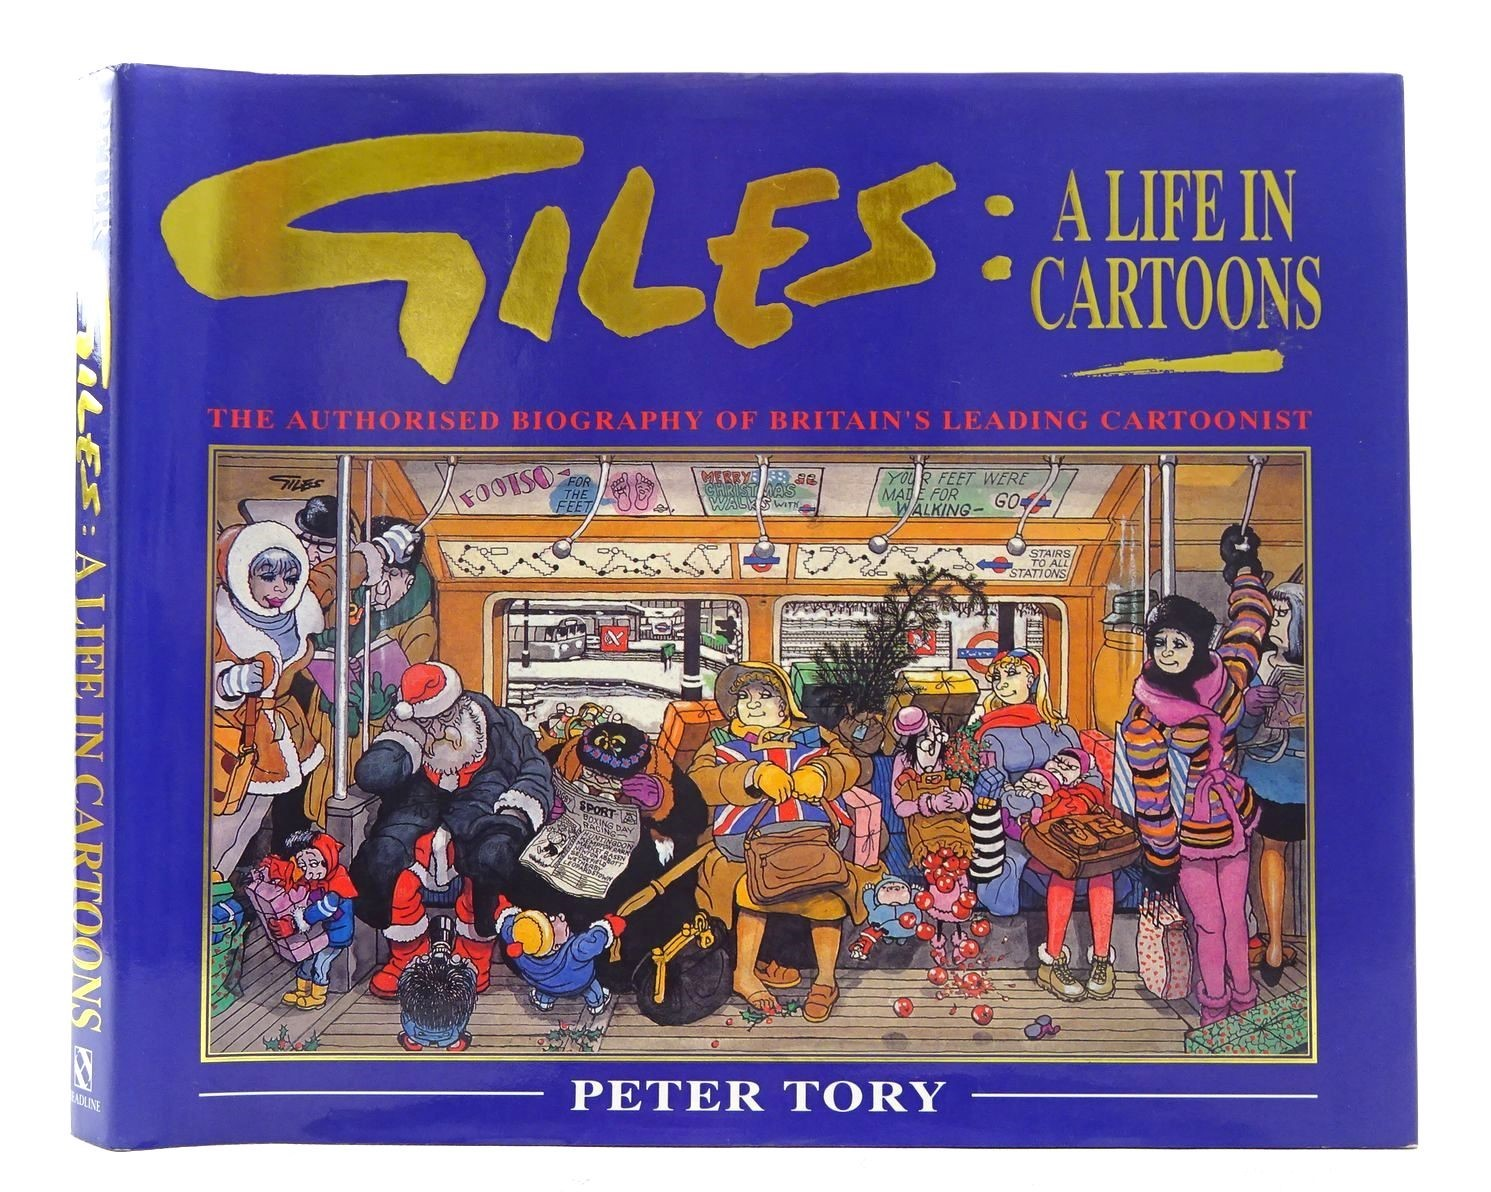 Giles - A Life in Cartoons